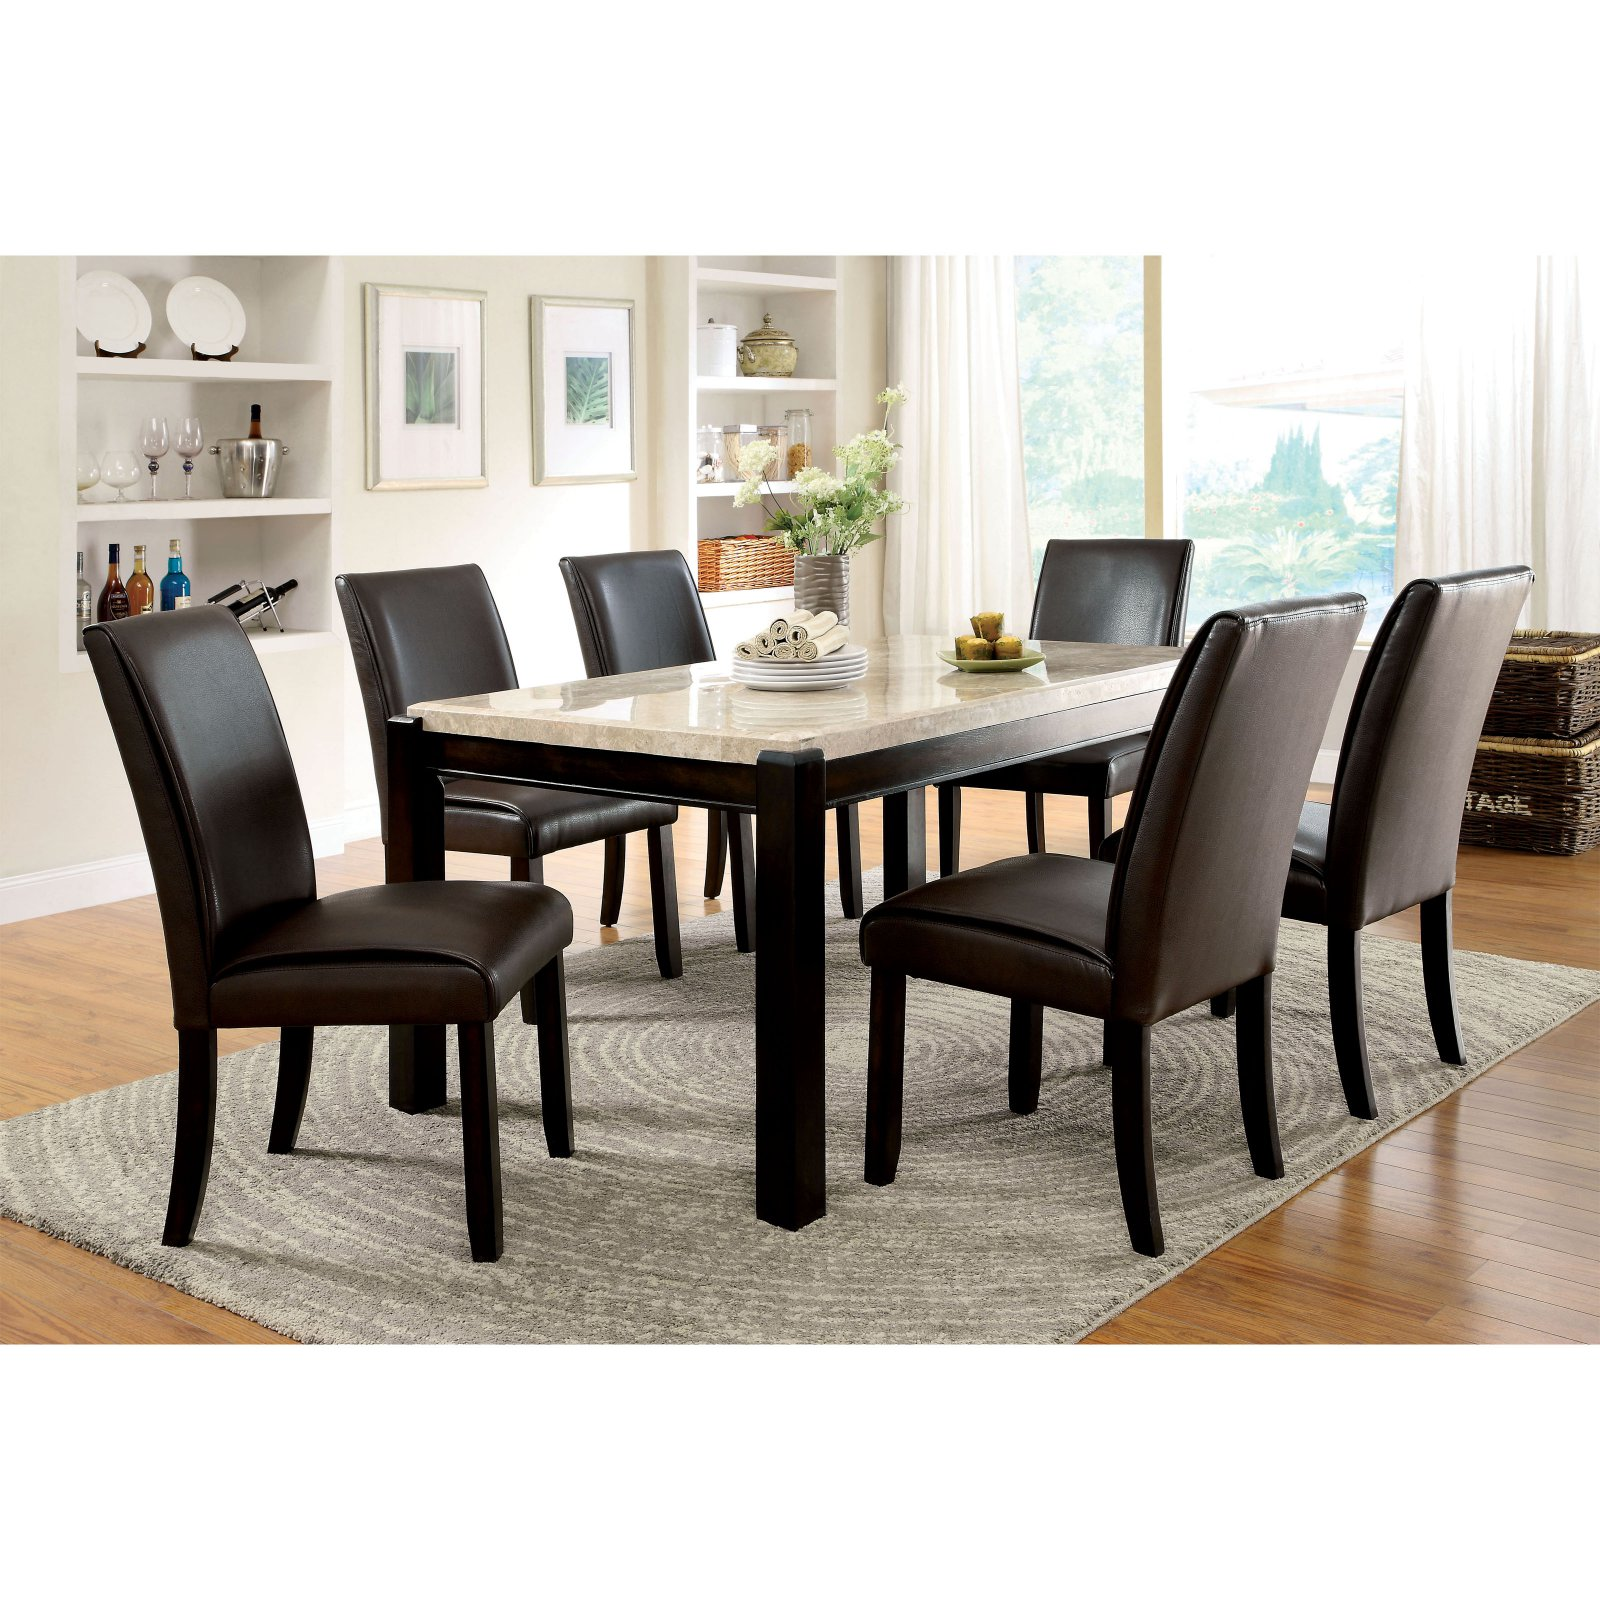 Furniture of America Friedrich Modern Marble Dining Table